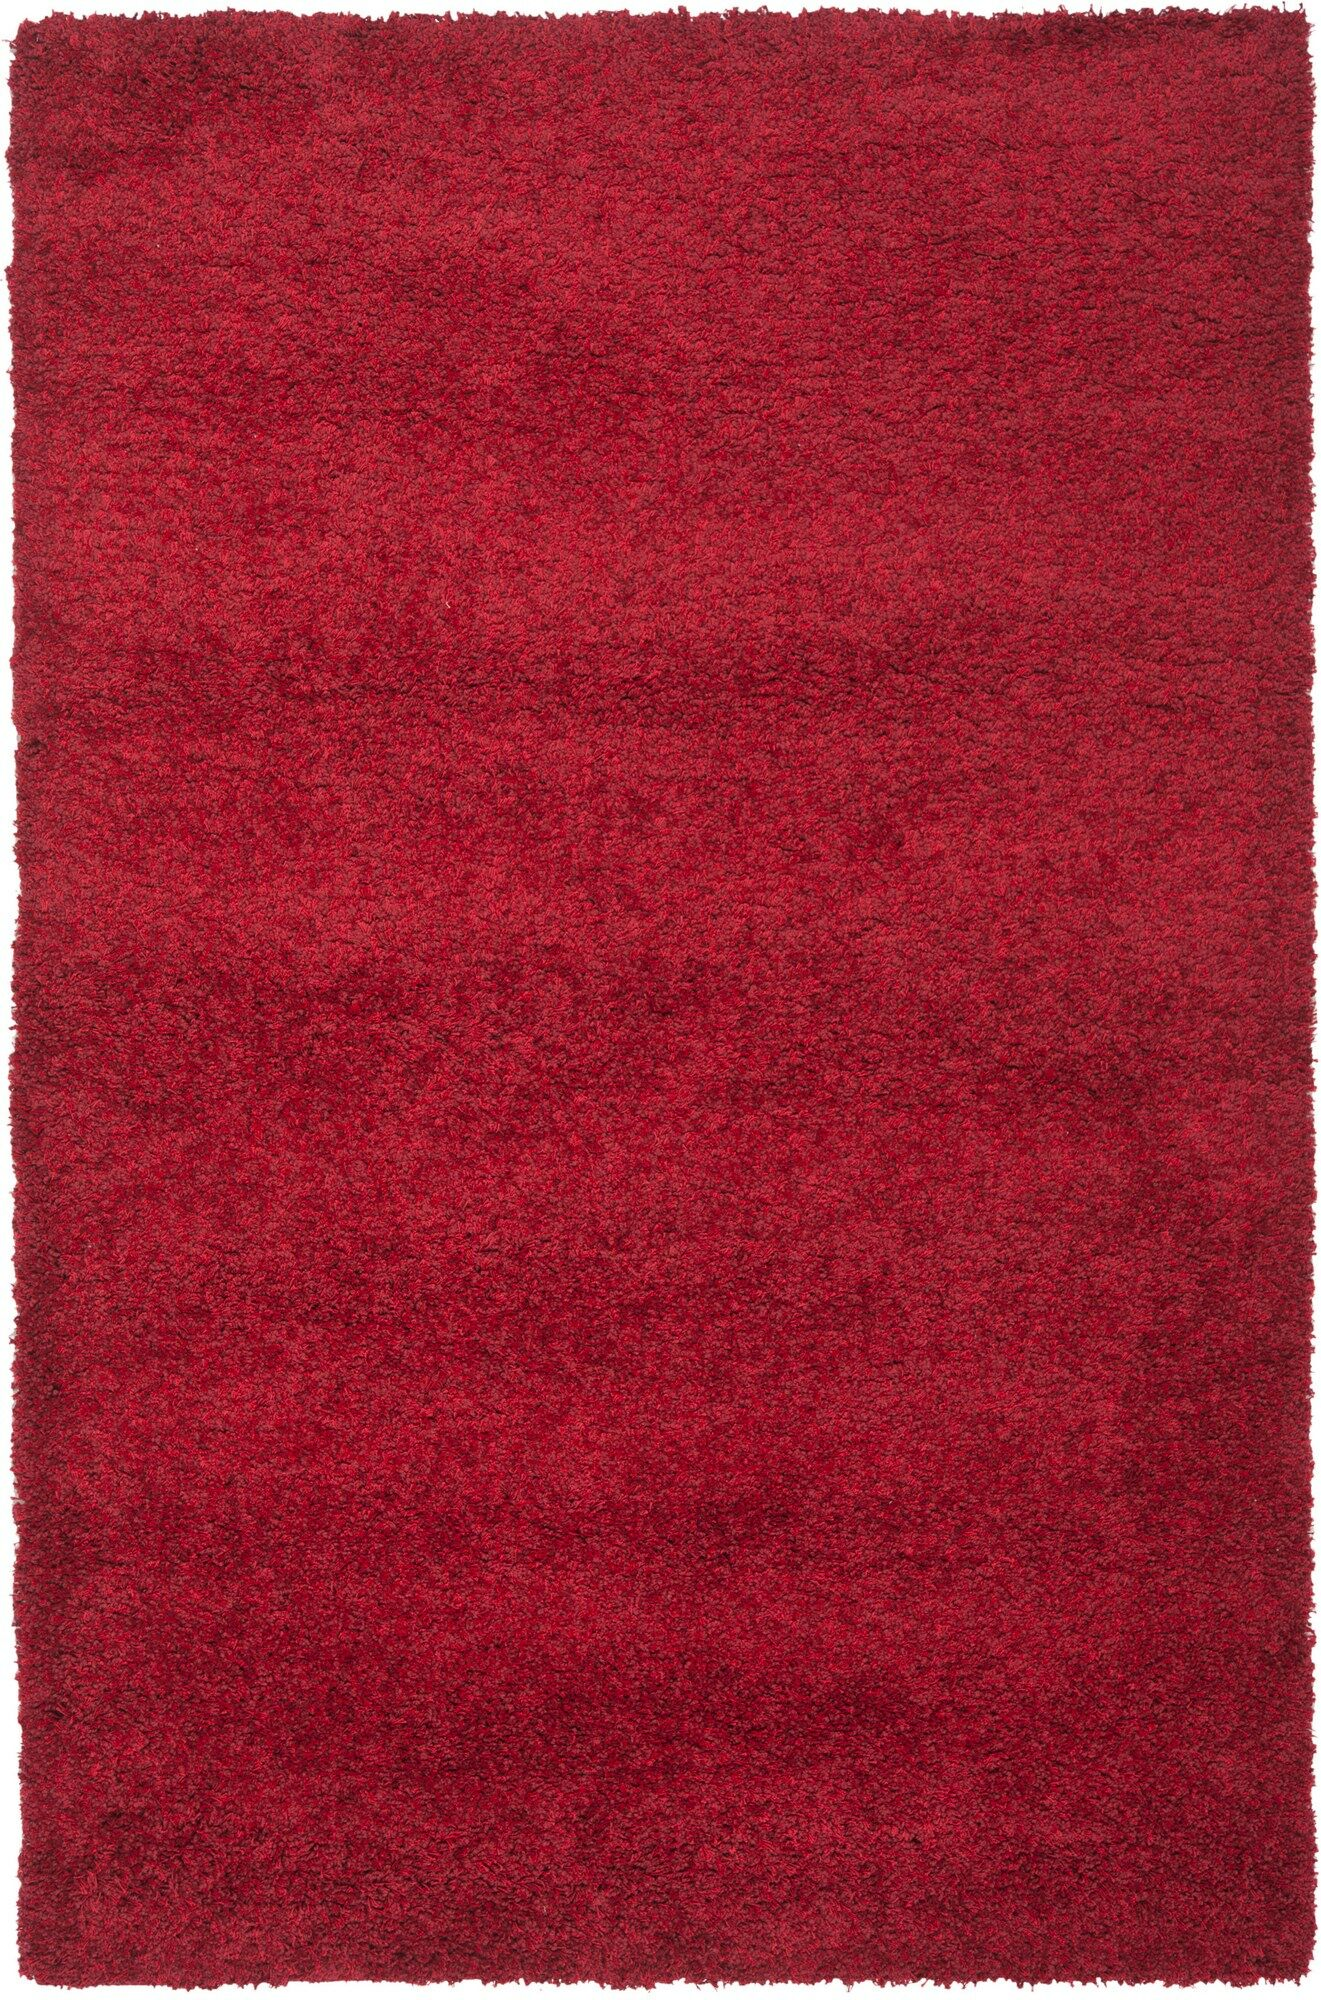 Rowen Handmade Red Area Rug Rug Size: Rectangle 8' x 10'